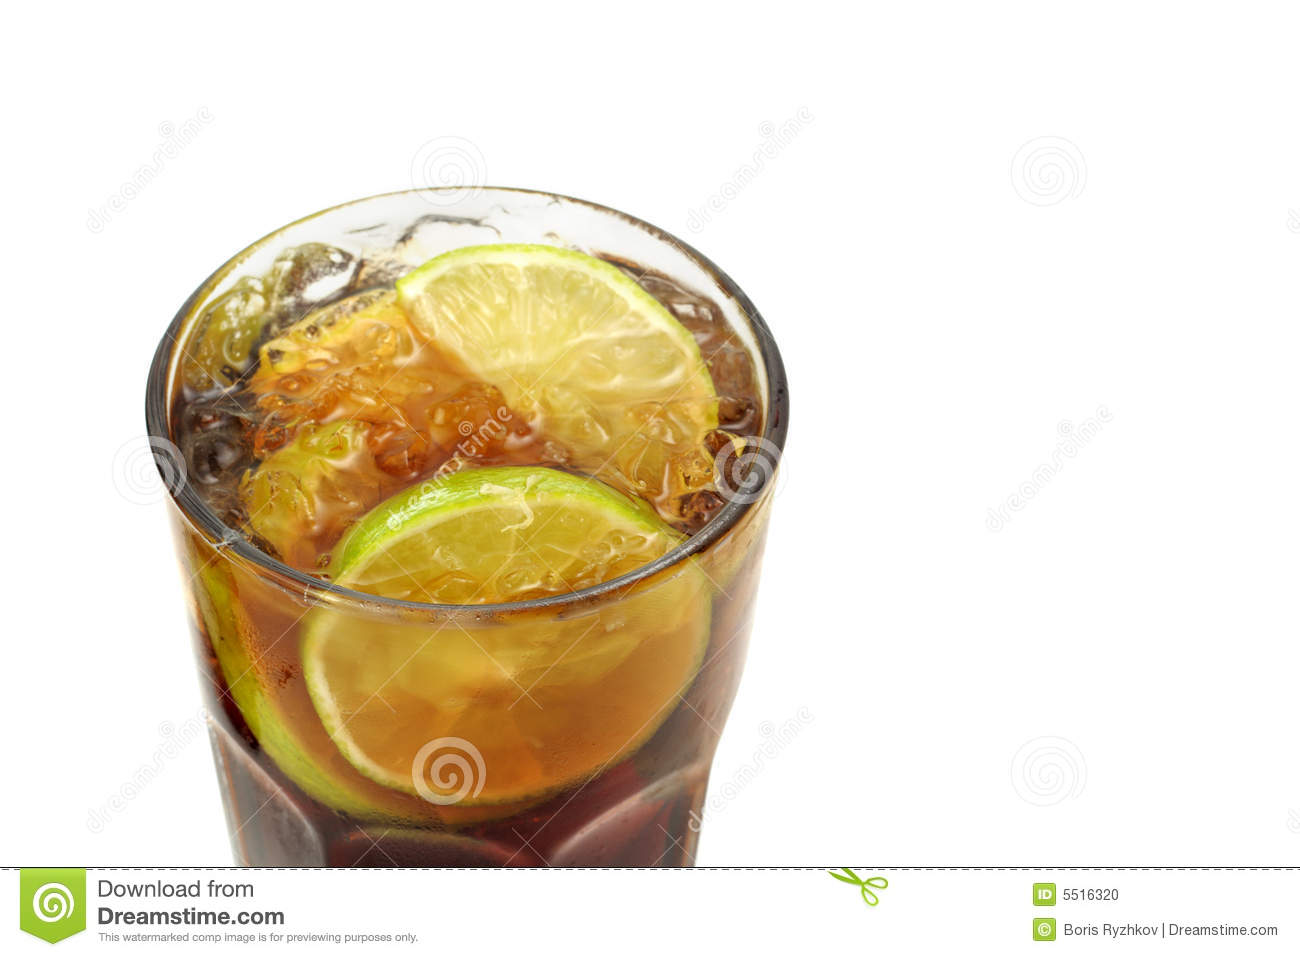 Cocktail long island iced tea stock photo image 5516320 for Cocktail long island